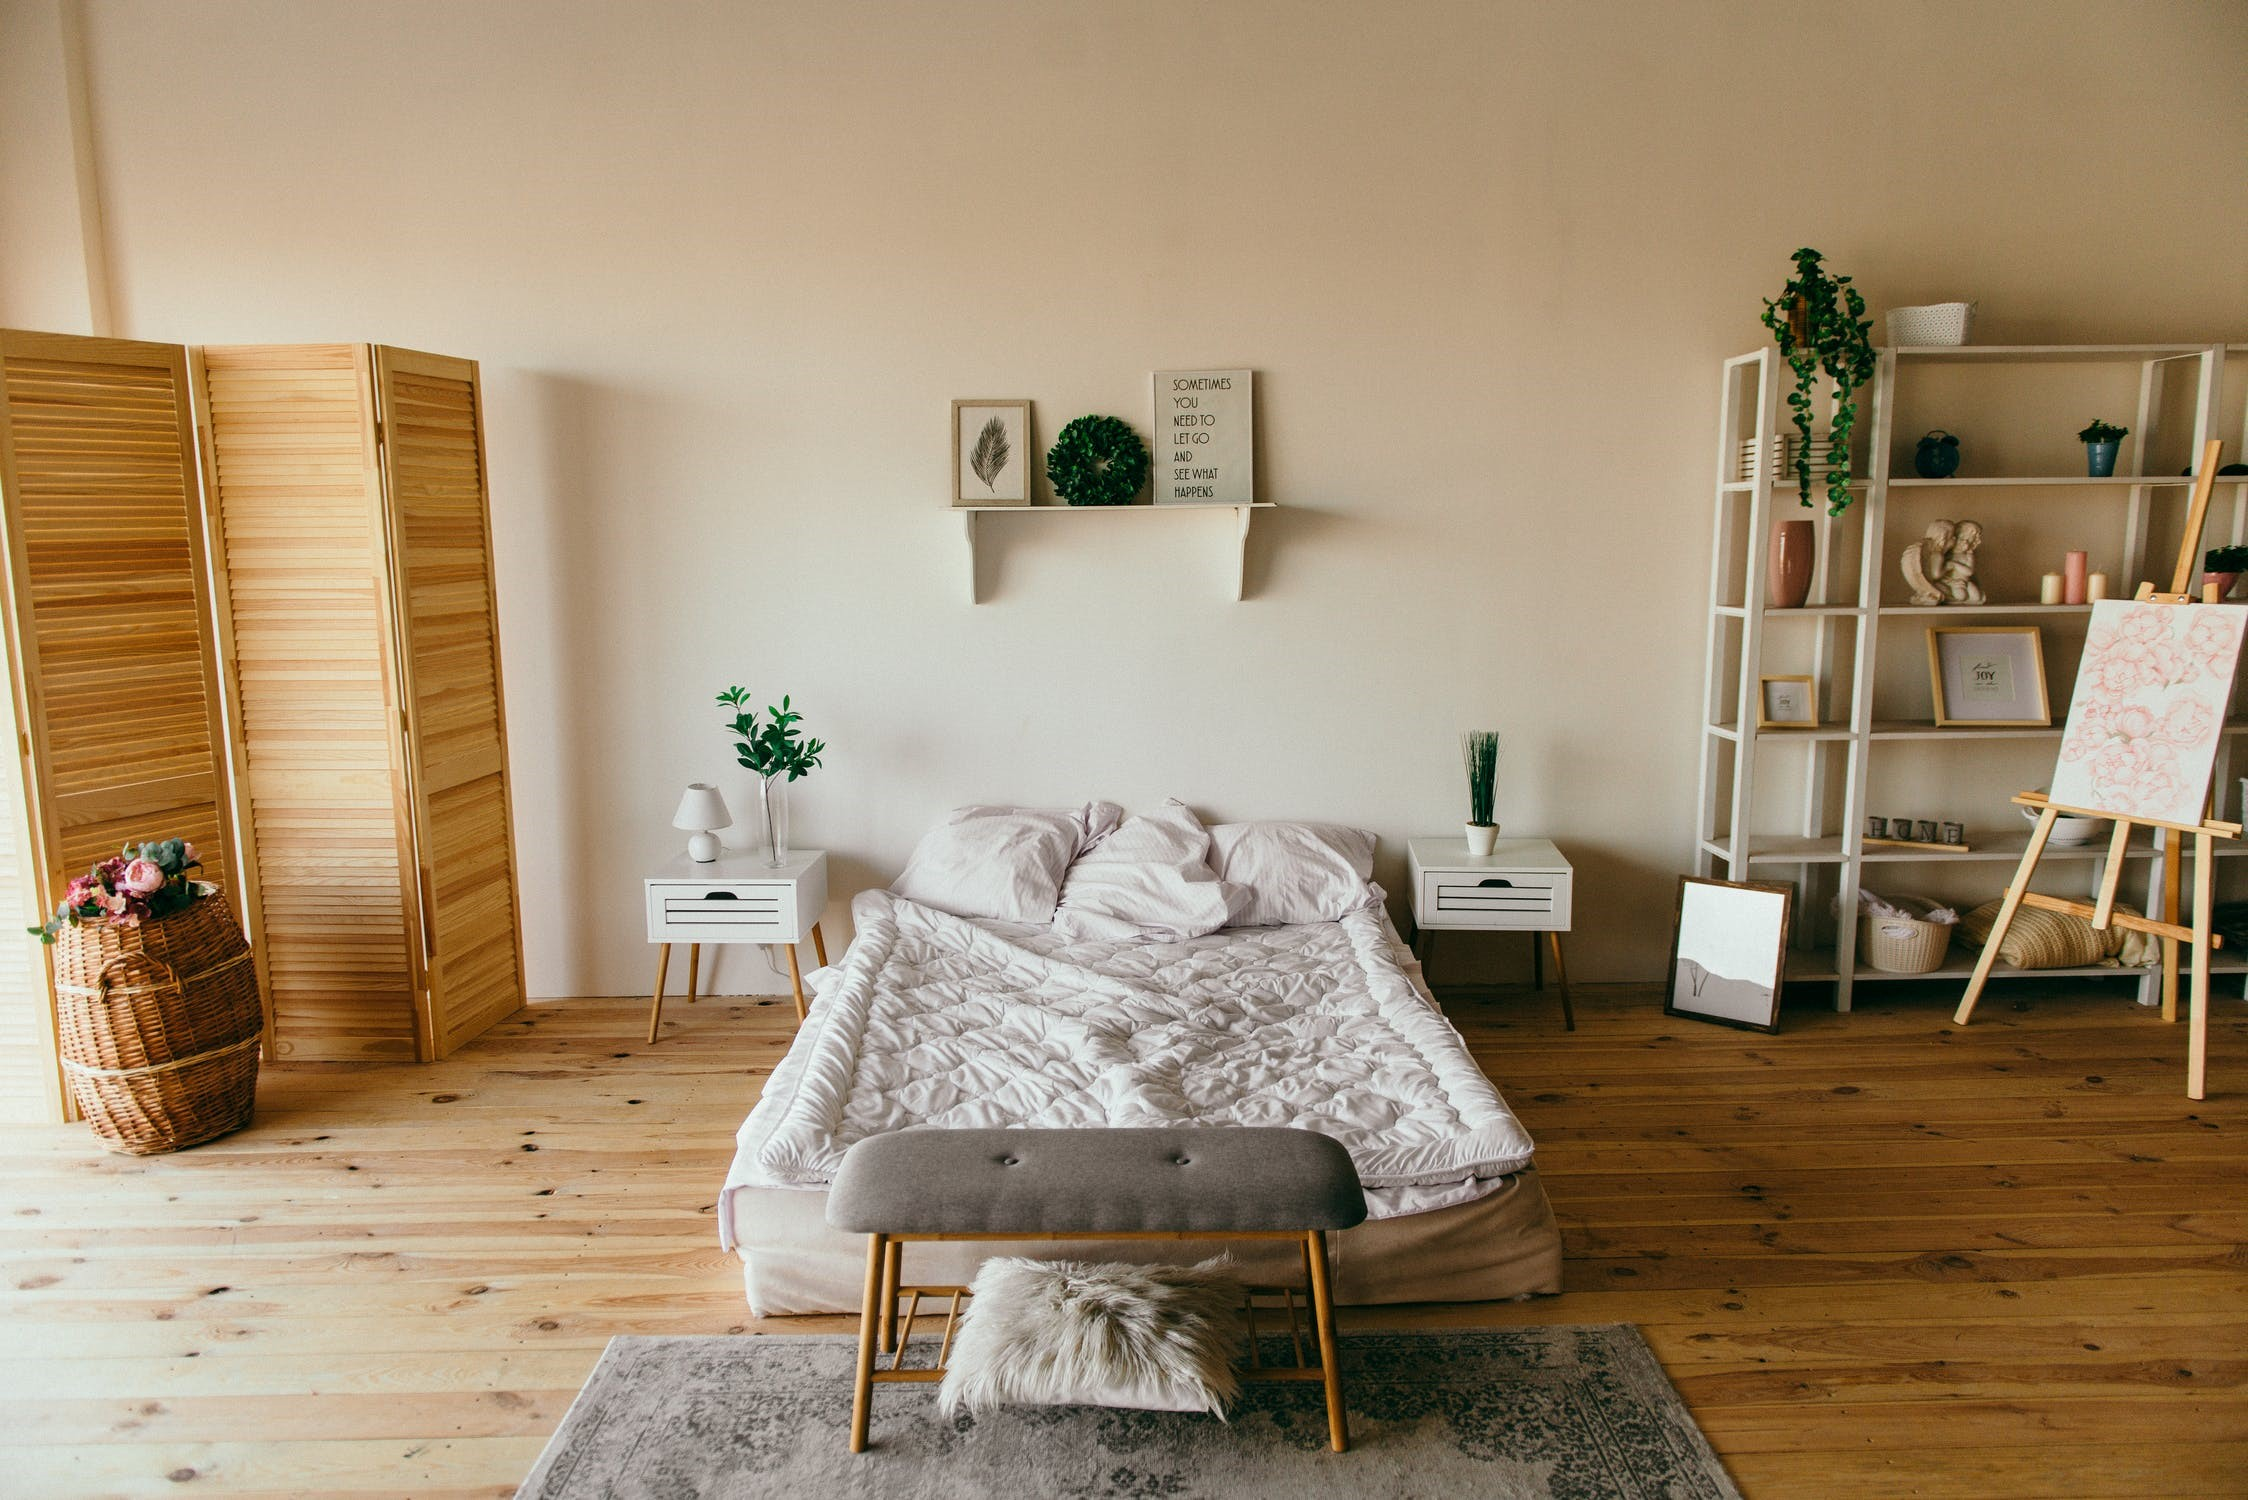 10 Budget-Friendly Options for Styling Your Rental Property